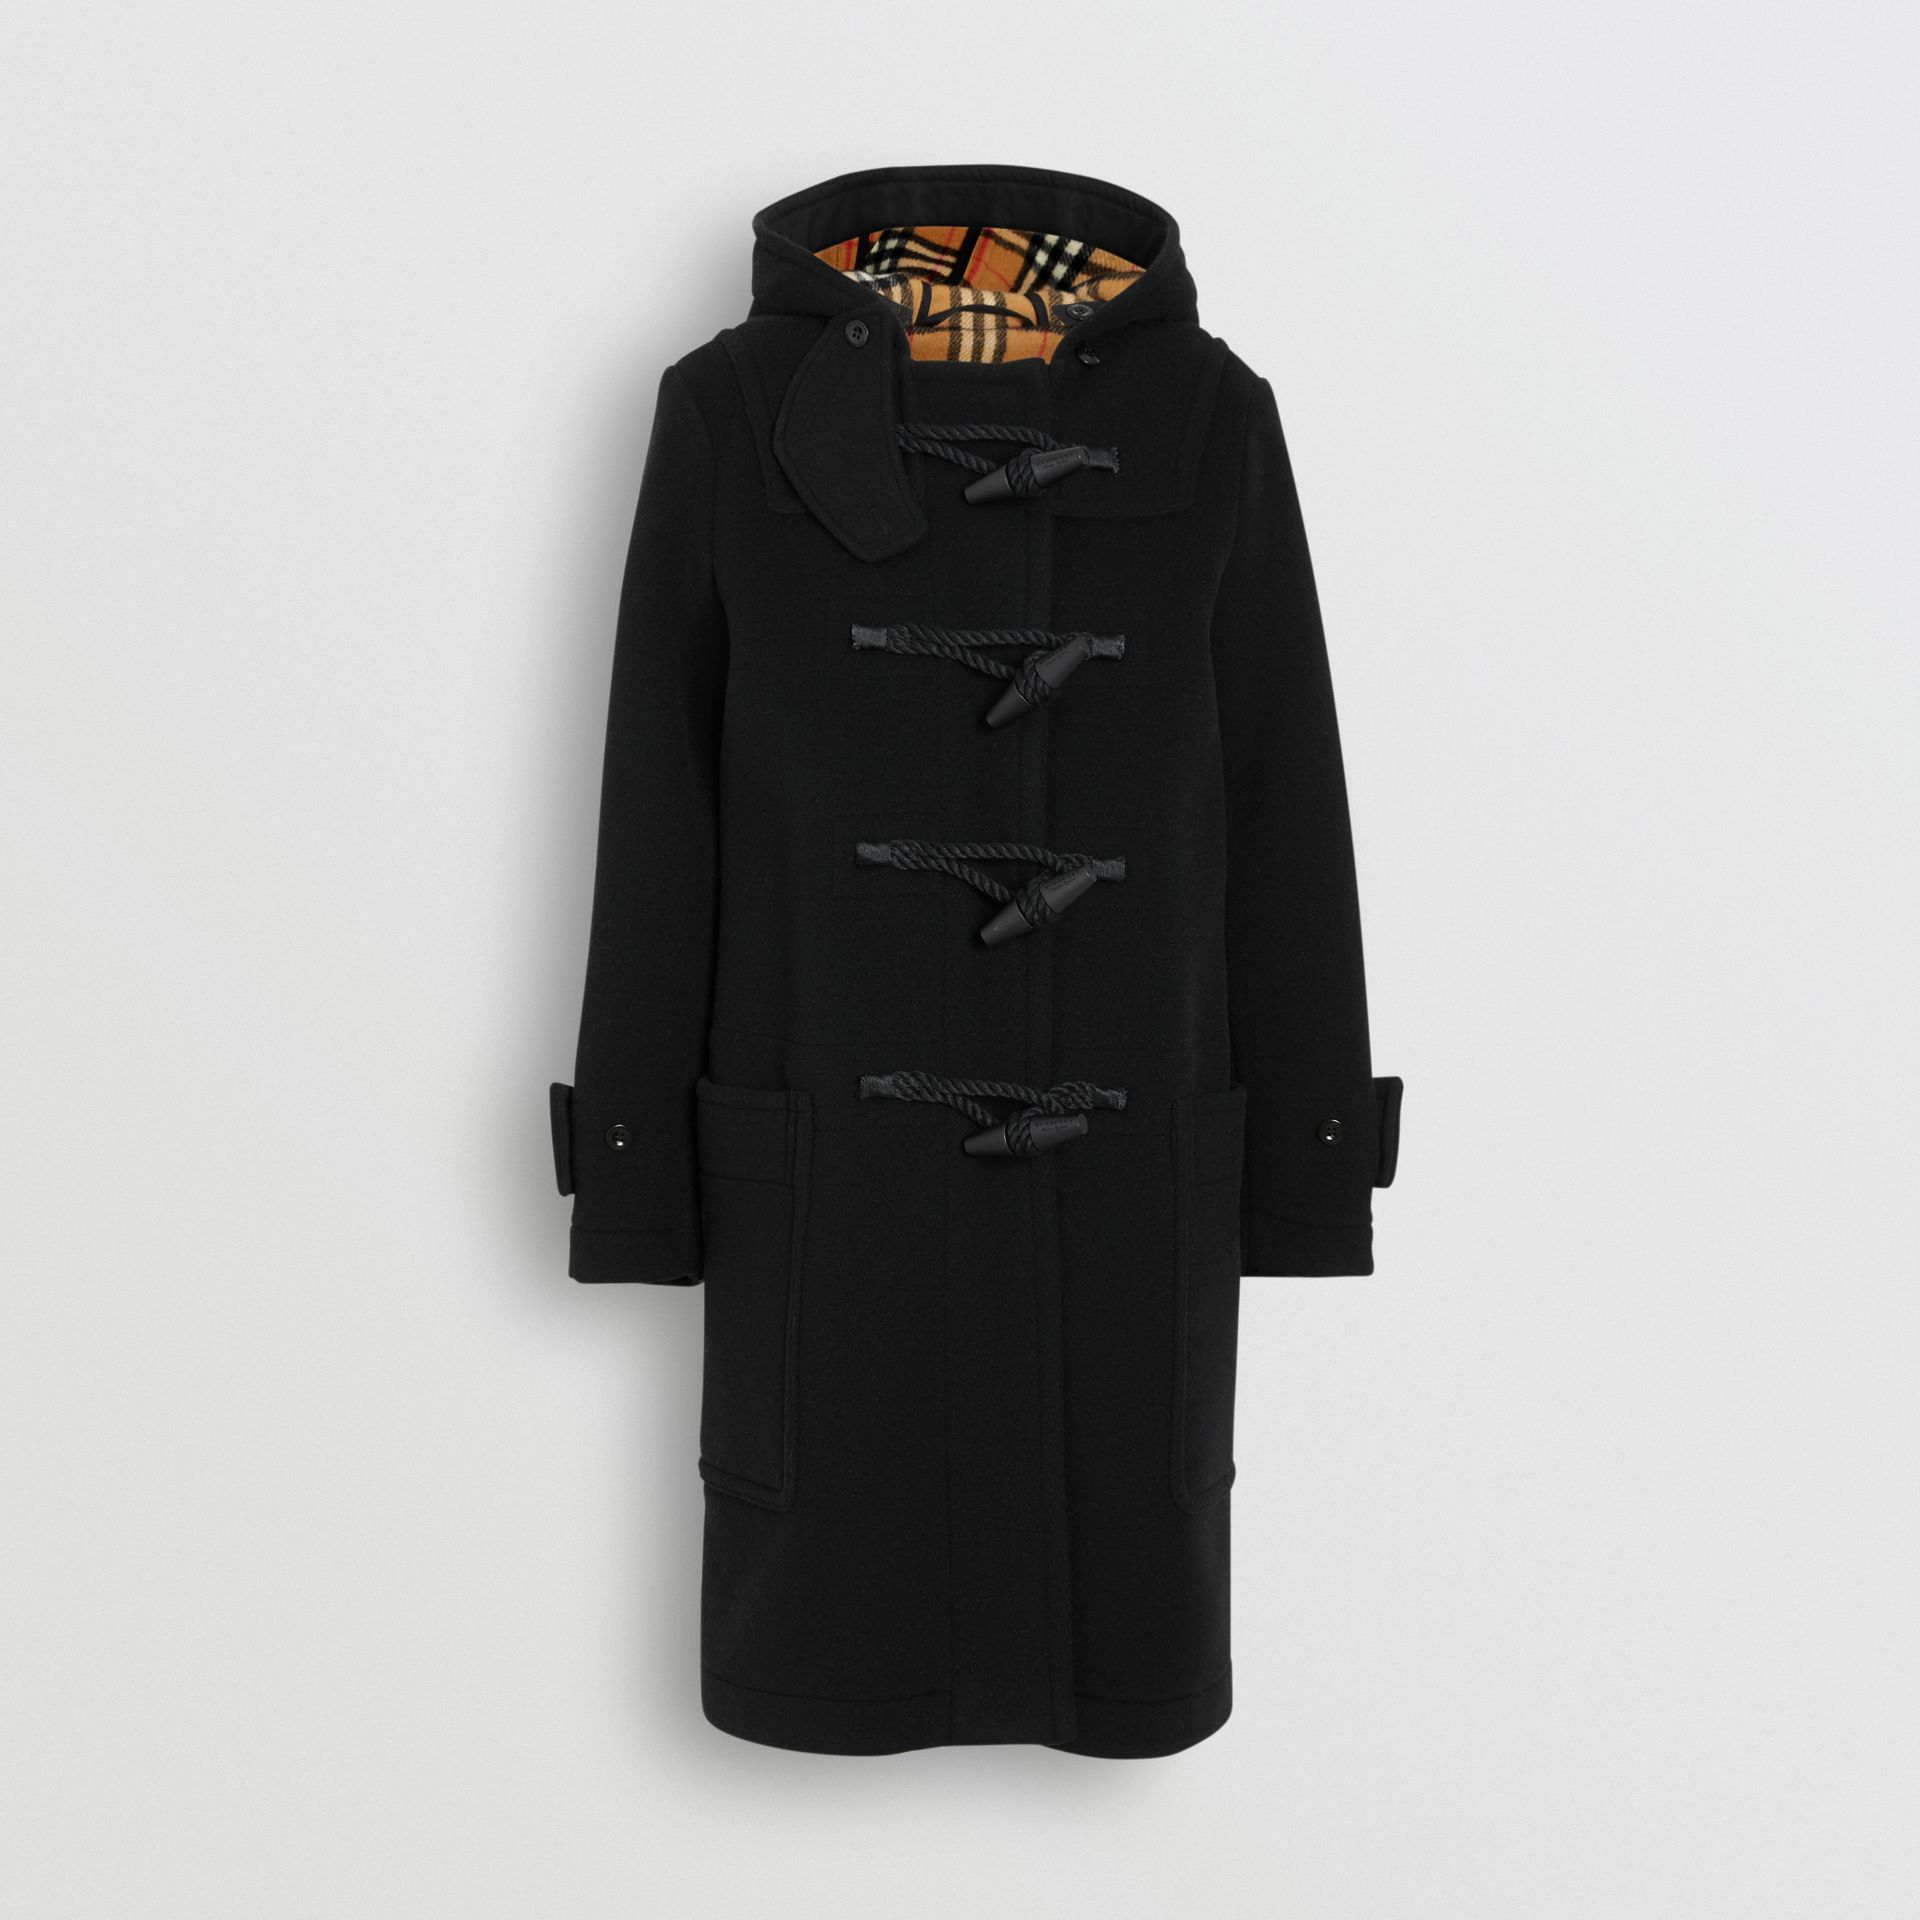 Wool Blend Duffle Coat in Black - Women | Burberry - gallery image 4